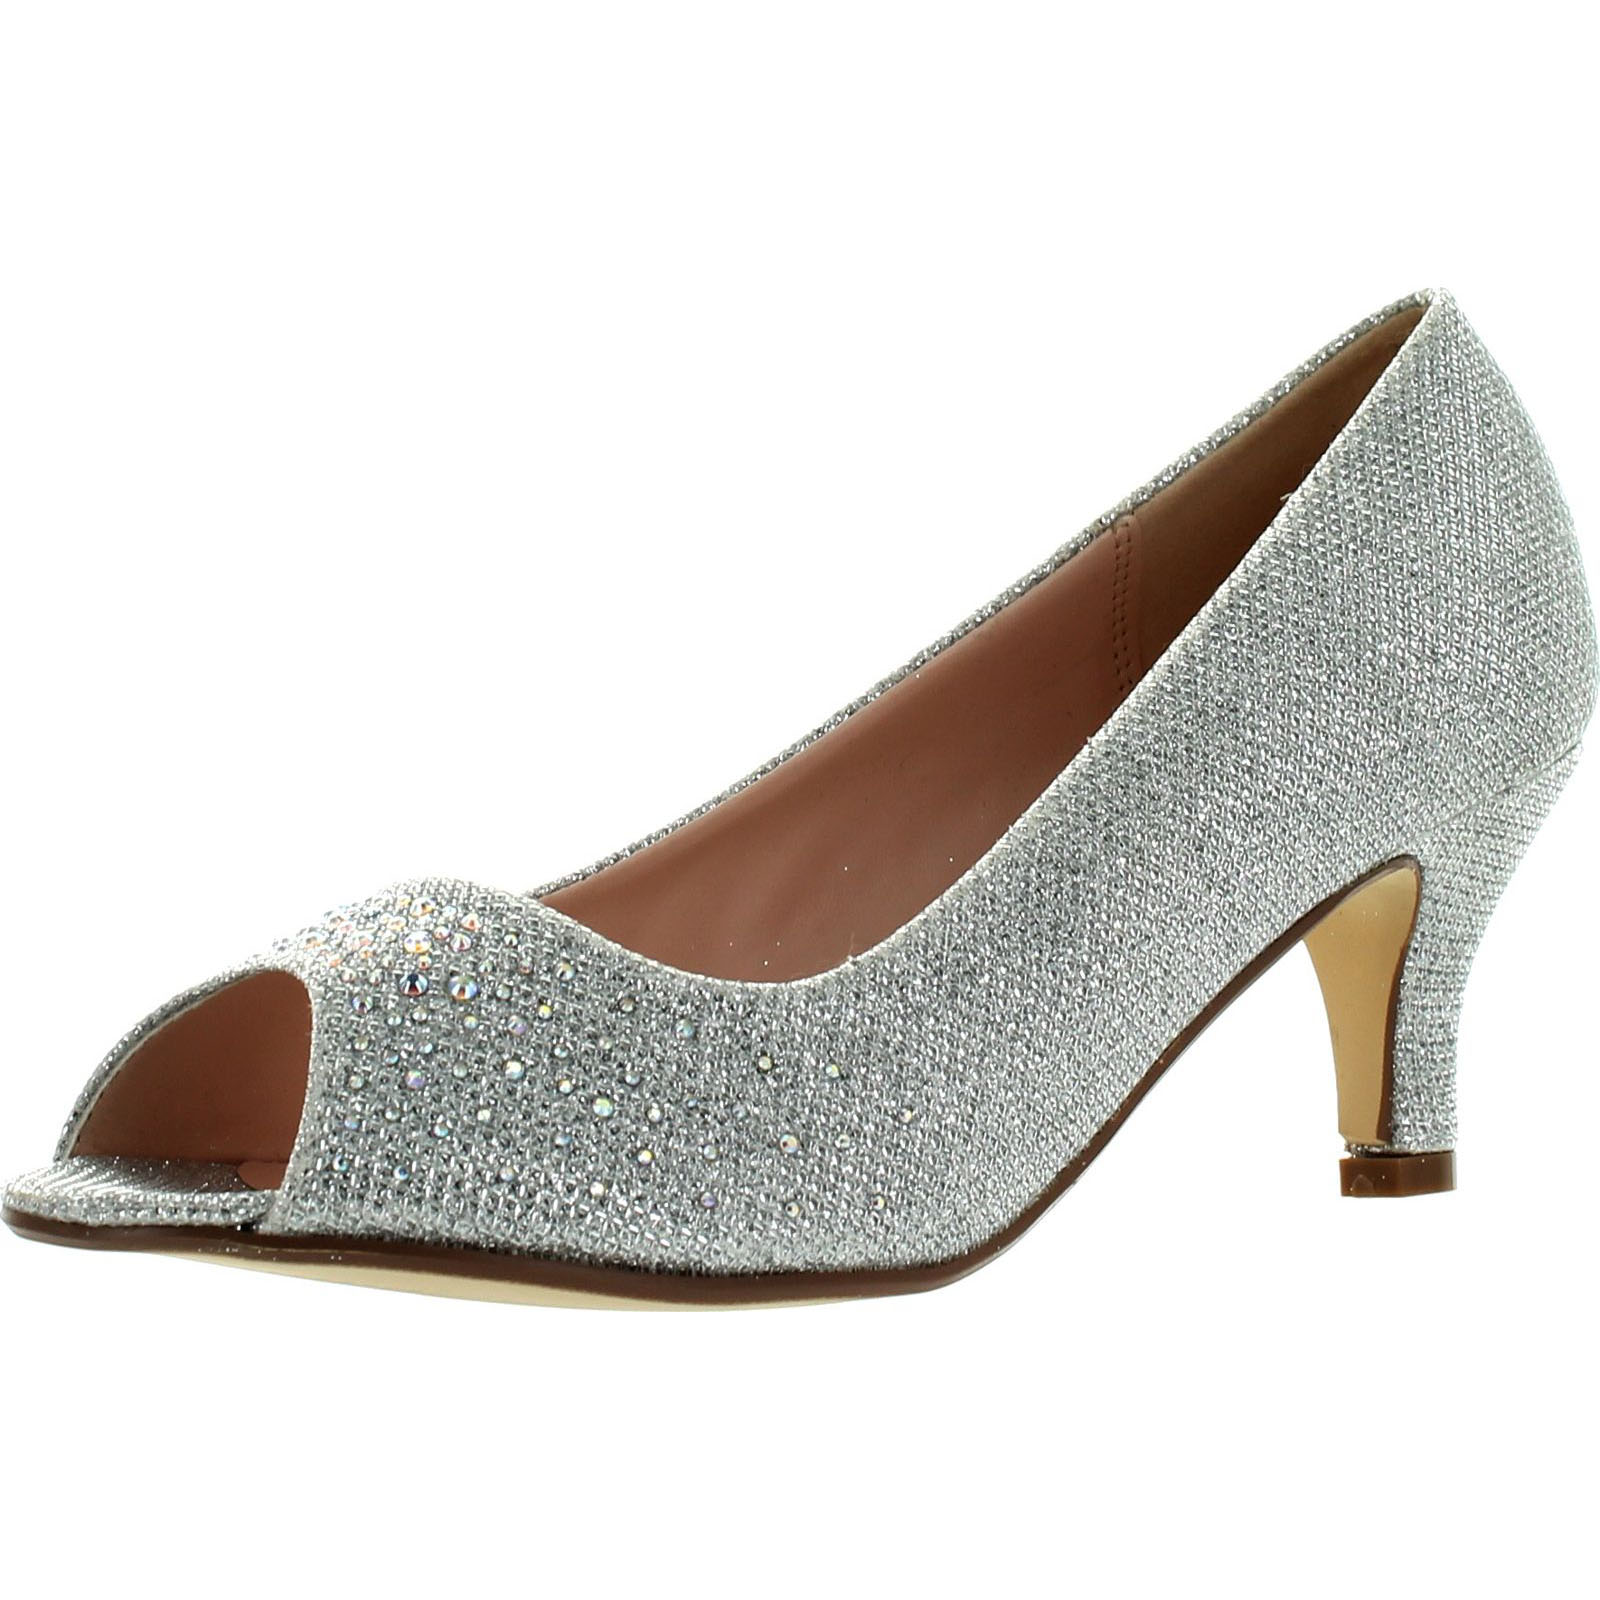 BONNIBEL WONDA-2 Women's Peep Toe Low Heel Glitter Slip On Dress Pumps